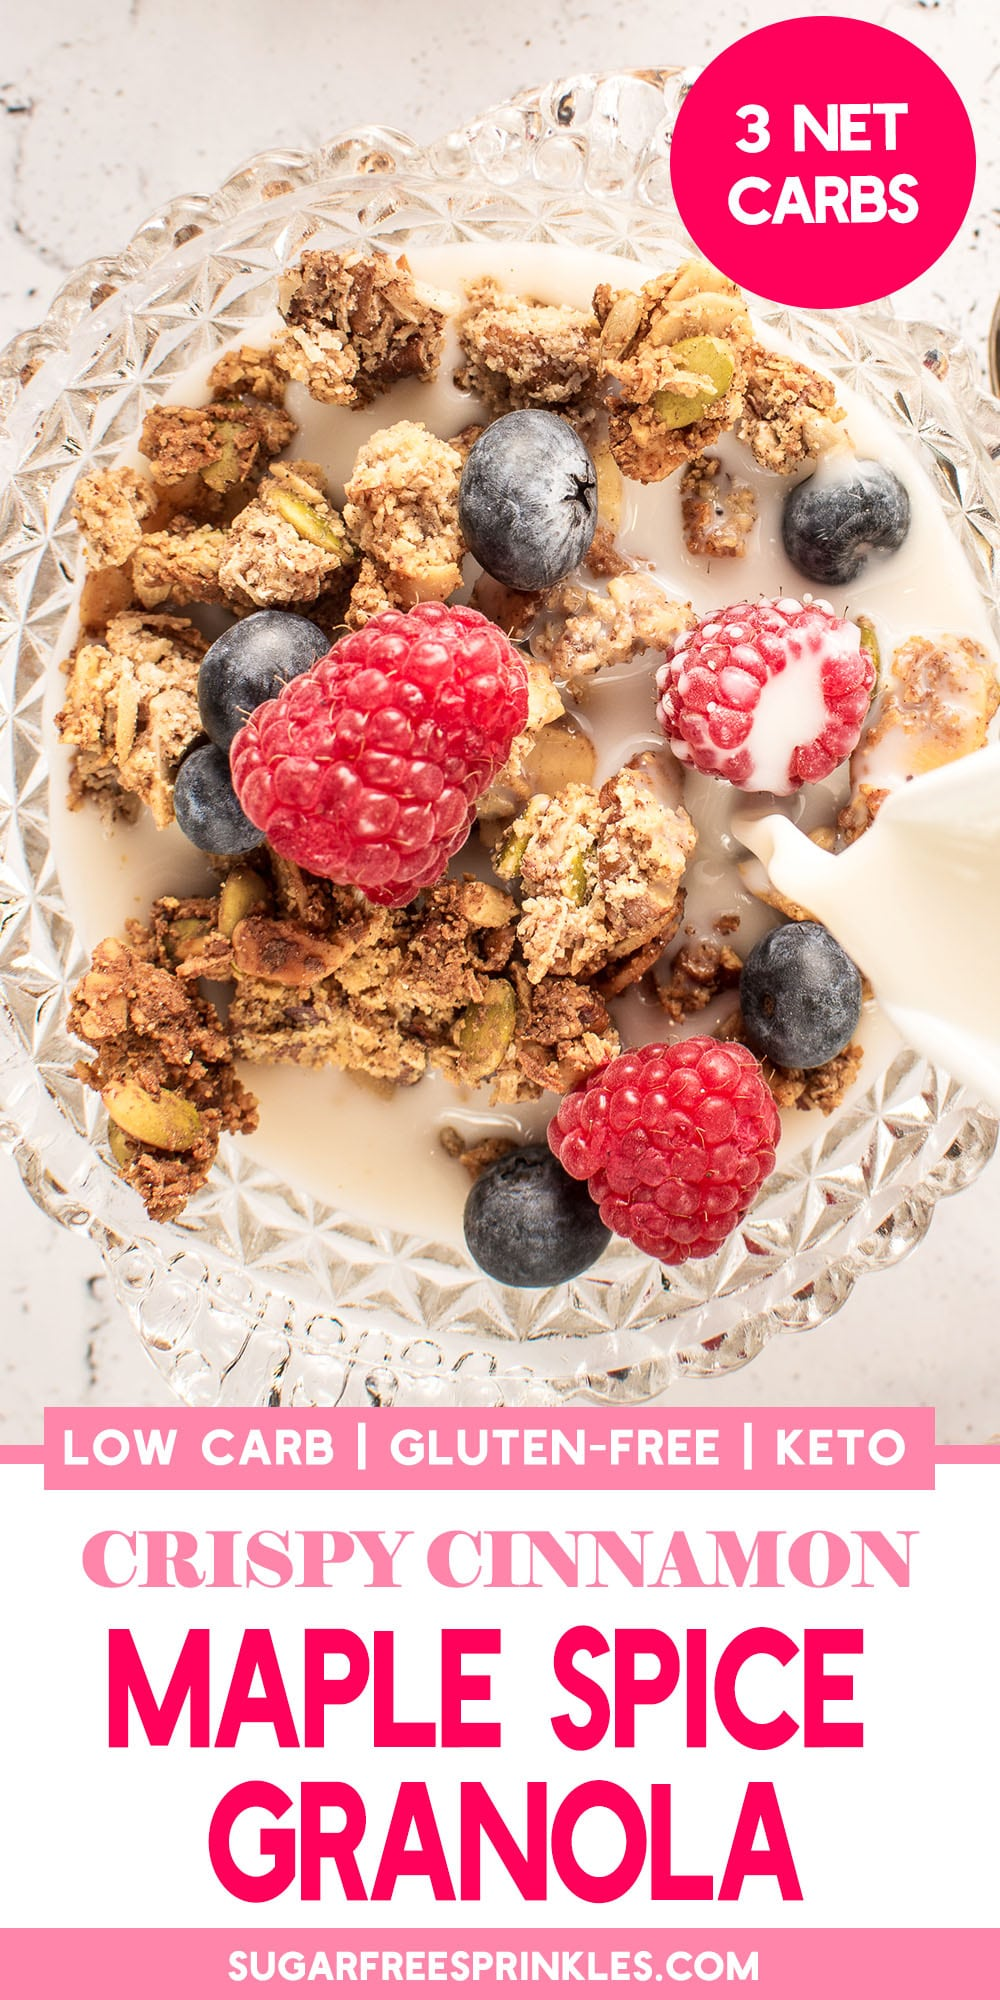 A crispy, chewy, lightly sweetened low carb granola. Also keto-friendly at only 3 net carbs per serving, and completely gluten-free. This granola stores for up to two weeks in the cupboard, making it a quick and delicious breakfast for a hectic morning.